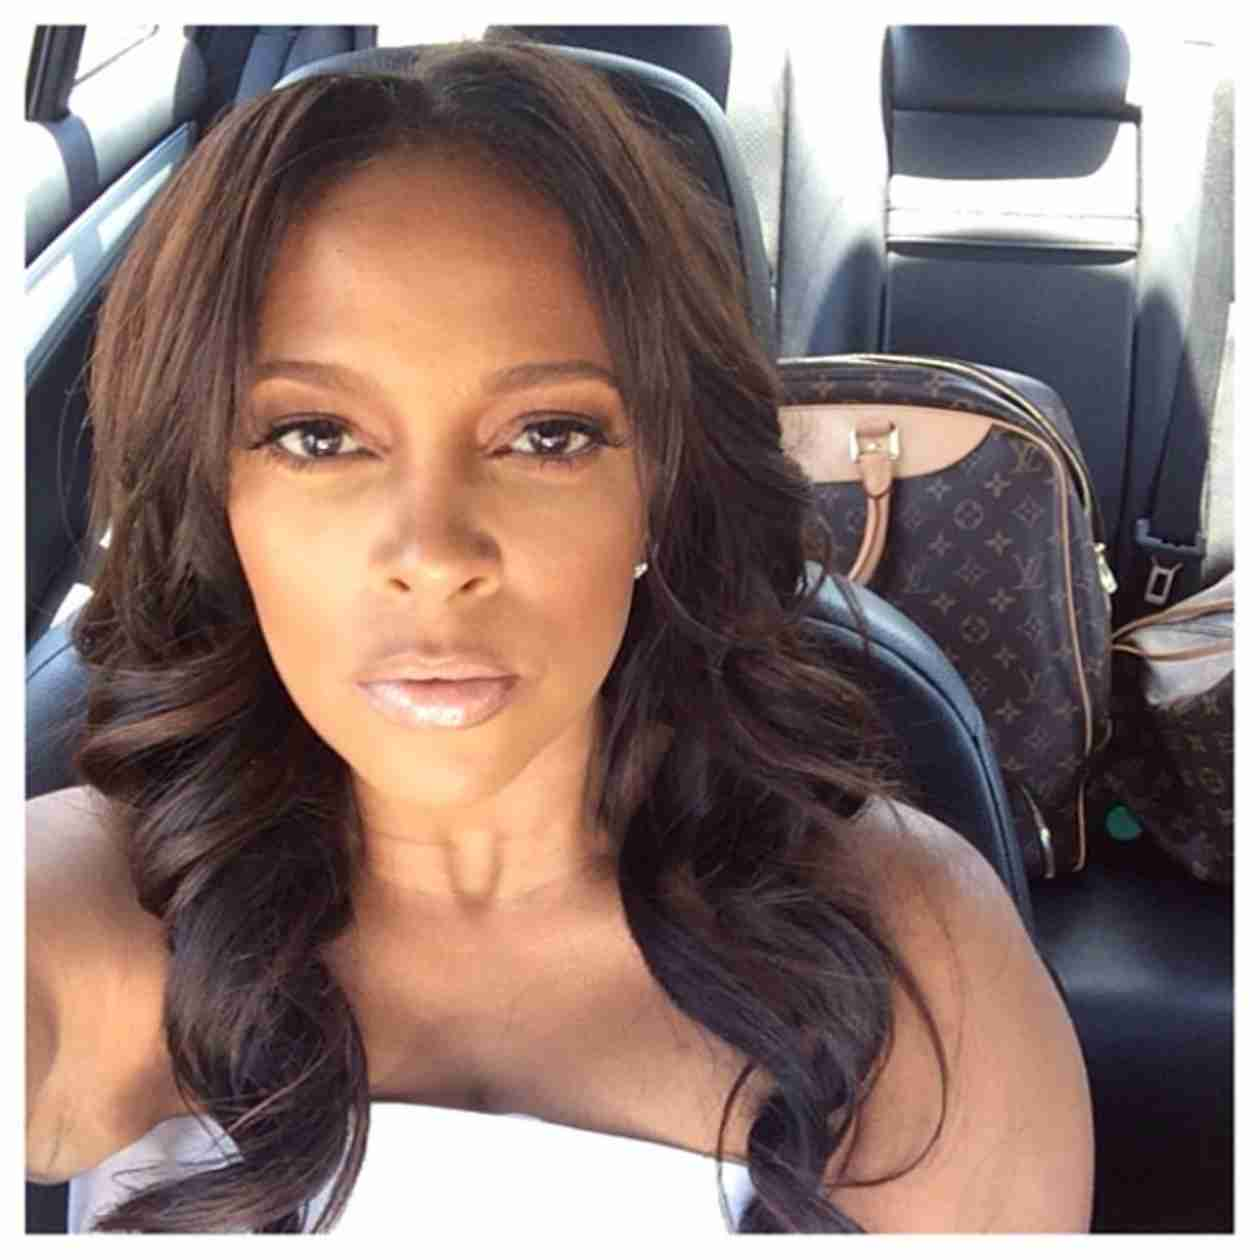 """Sundy Carter Takes """"Responsibility"""" For Her DUI Arrest"""